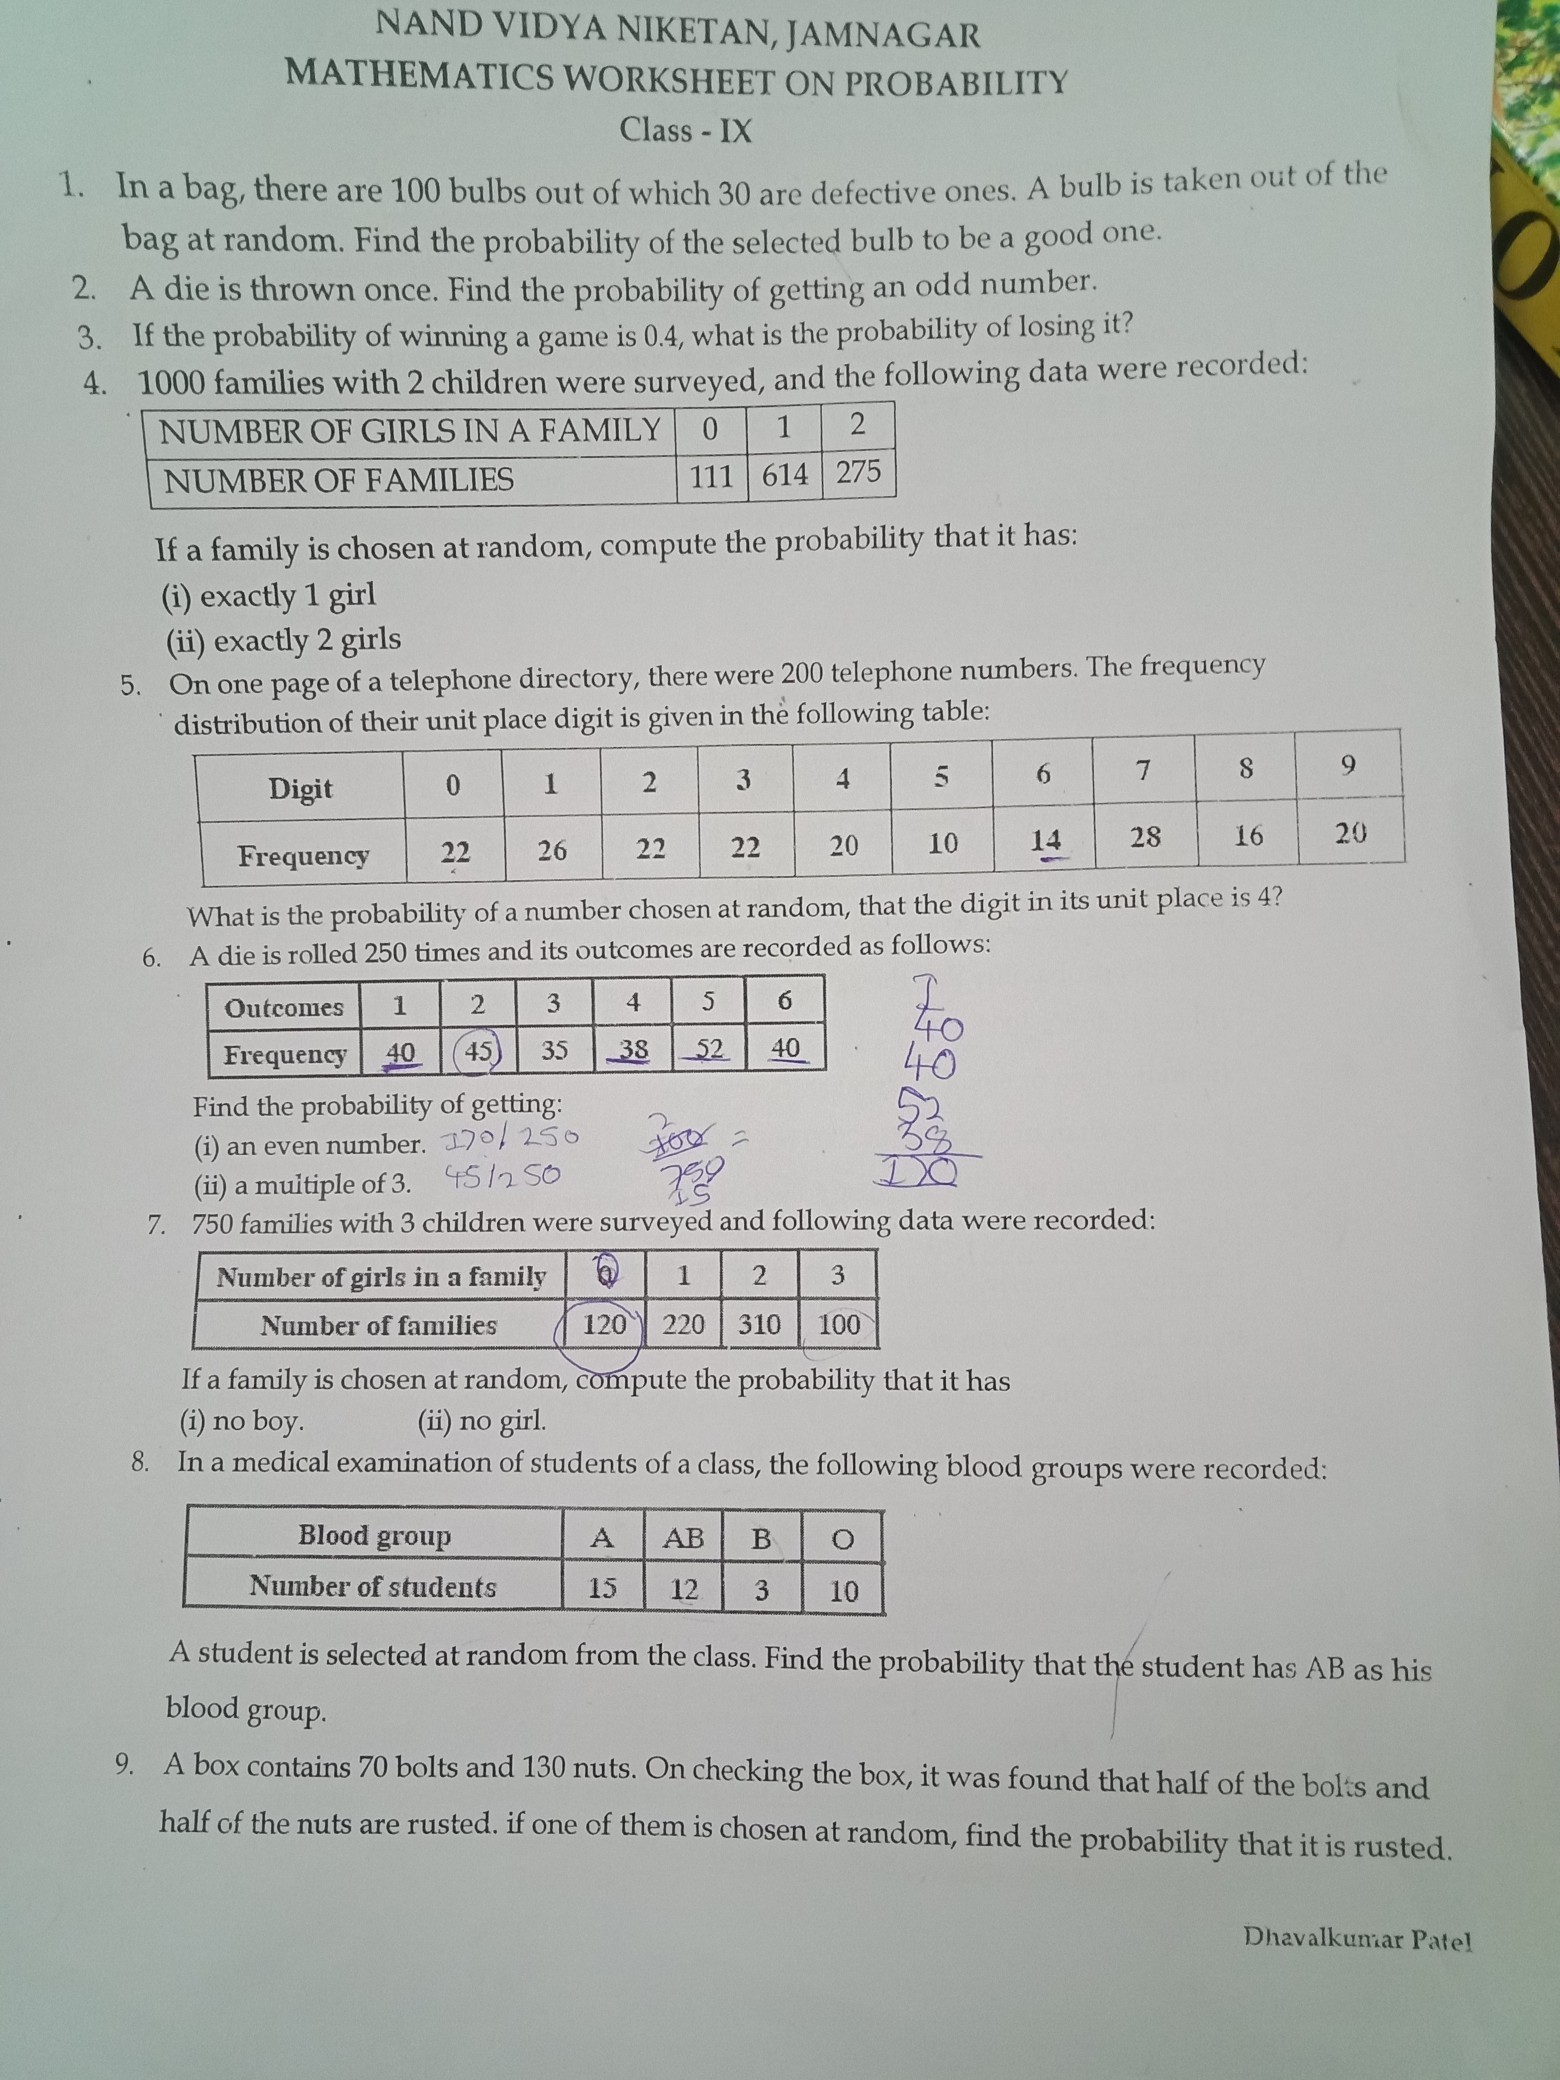 Worksheet For Class 9th Mathematics Chapter Probability 15